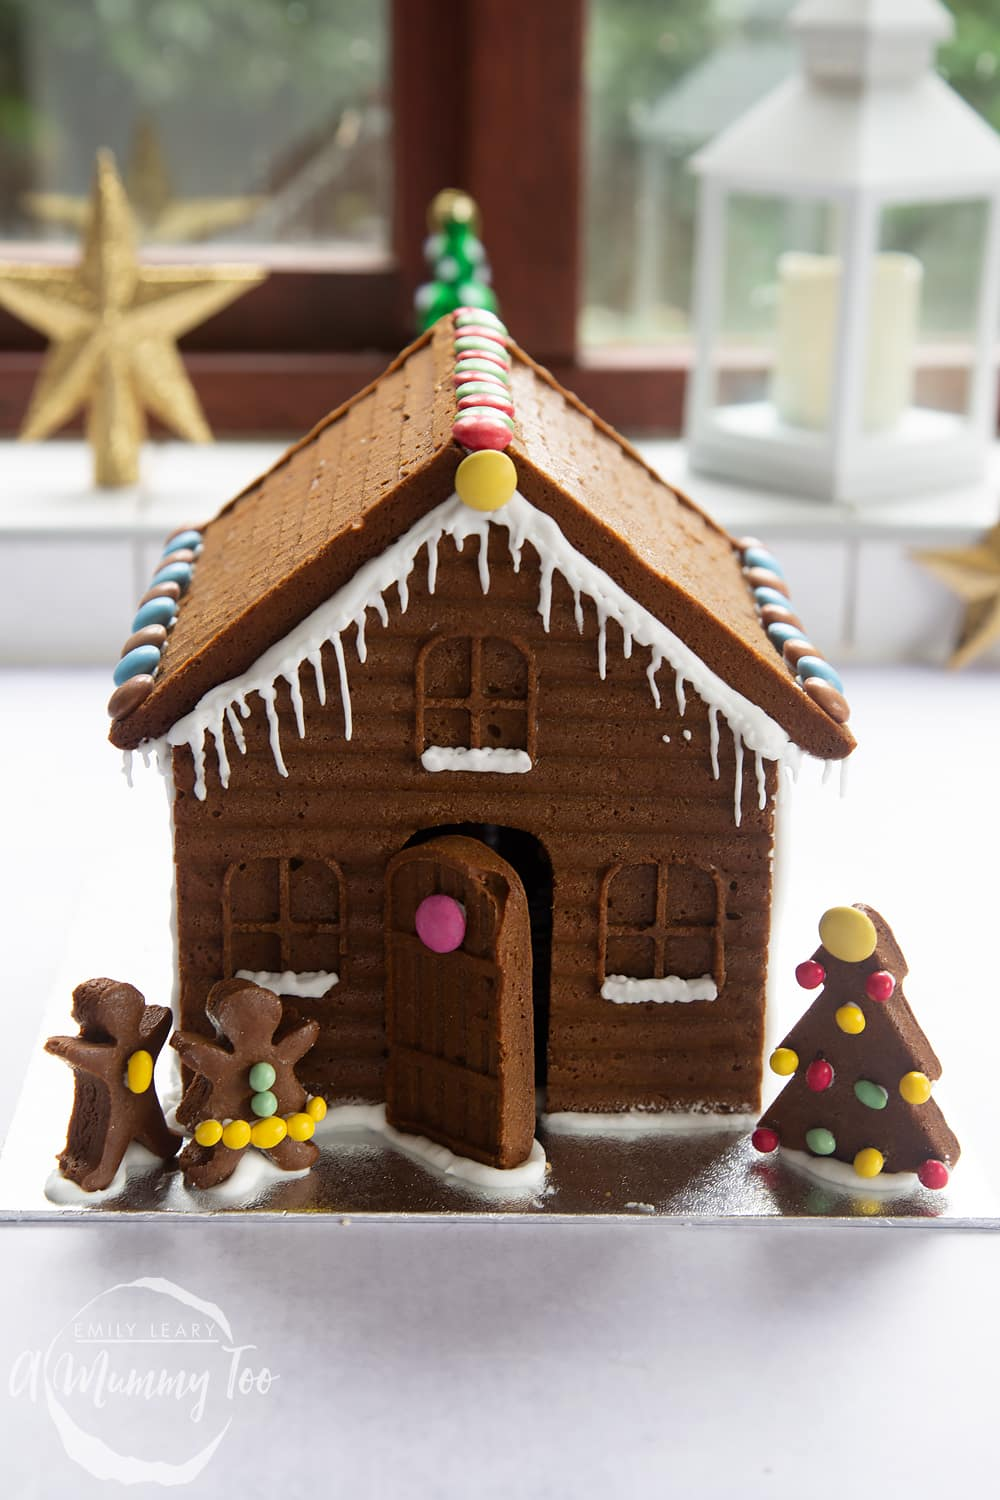 A detailed gingerbread house on a silver board. The house is decorated with smarties and mini chocolate beans. A gingerbread Christmas tree is shown to the left of the house, while two gingerbread people stand to the right.